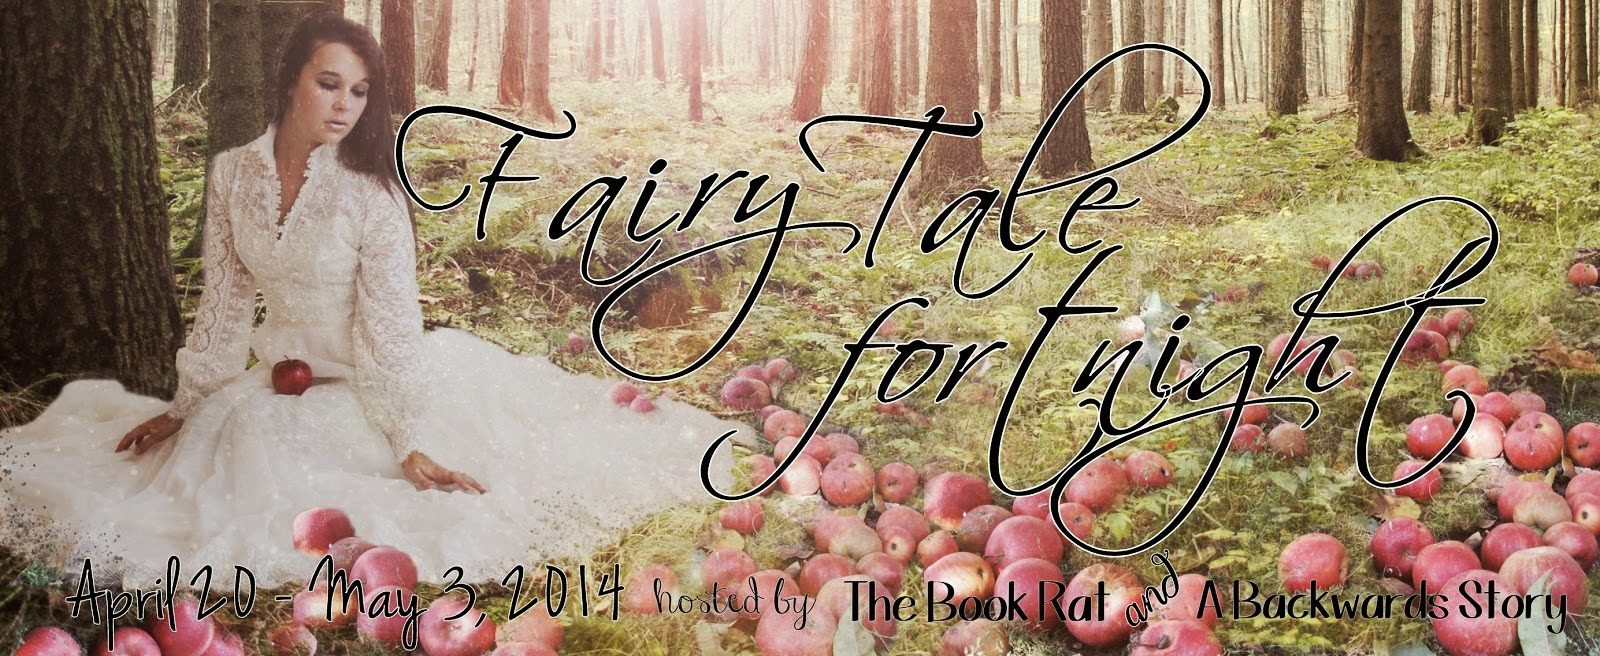 http://abackwardsstory.blogspot.com/2014/04/fairy-tale-fortnight-schedule-of-events.html